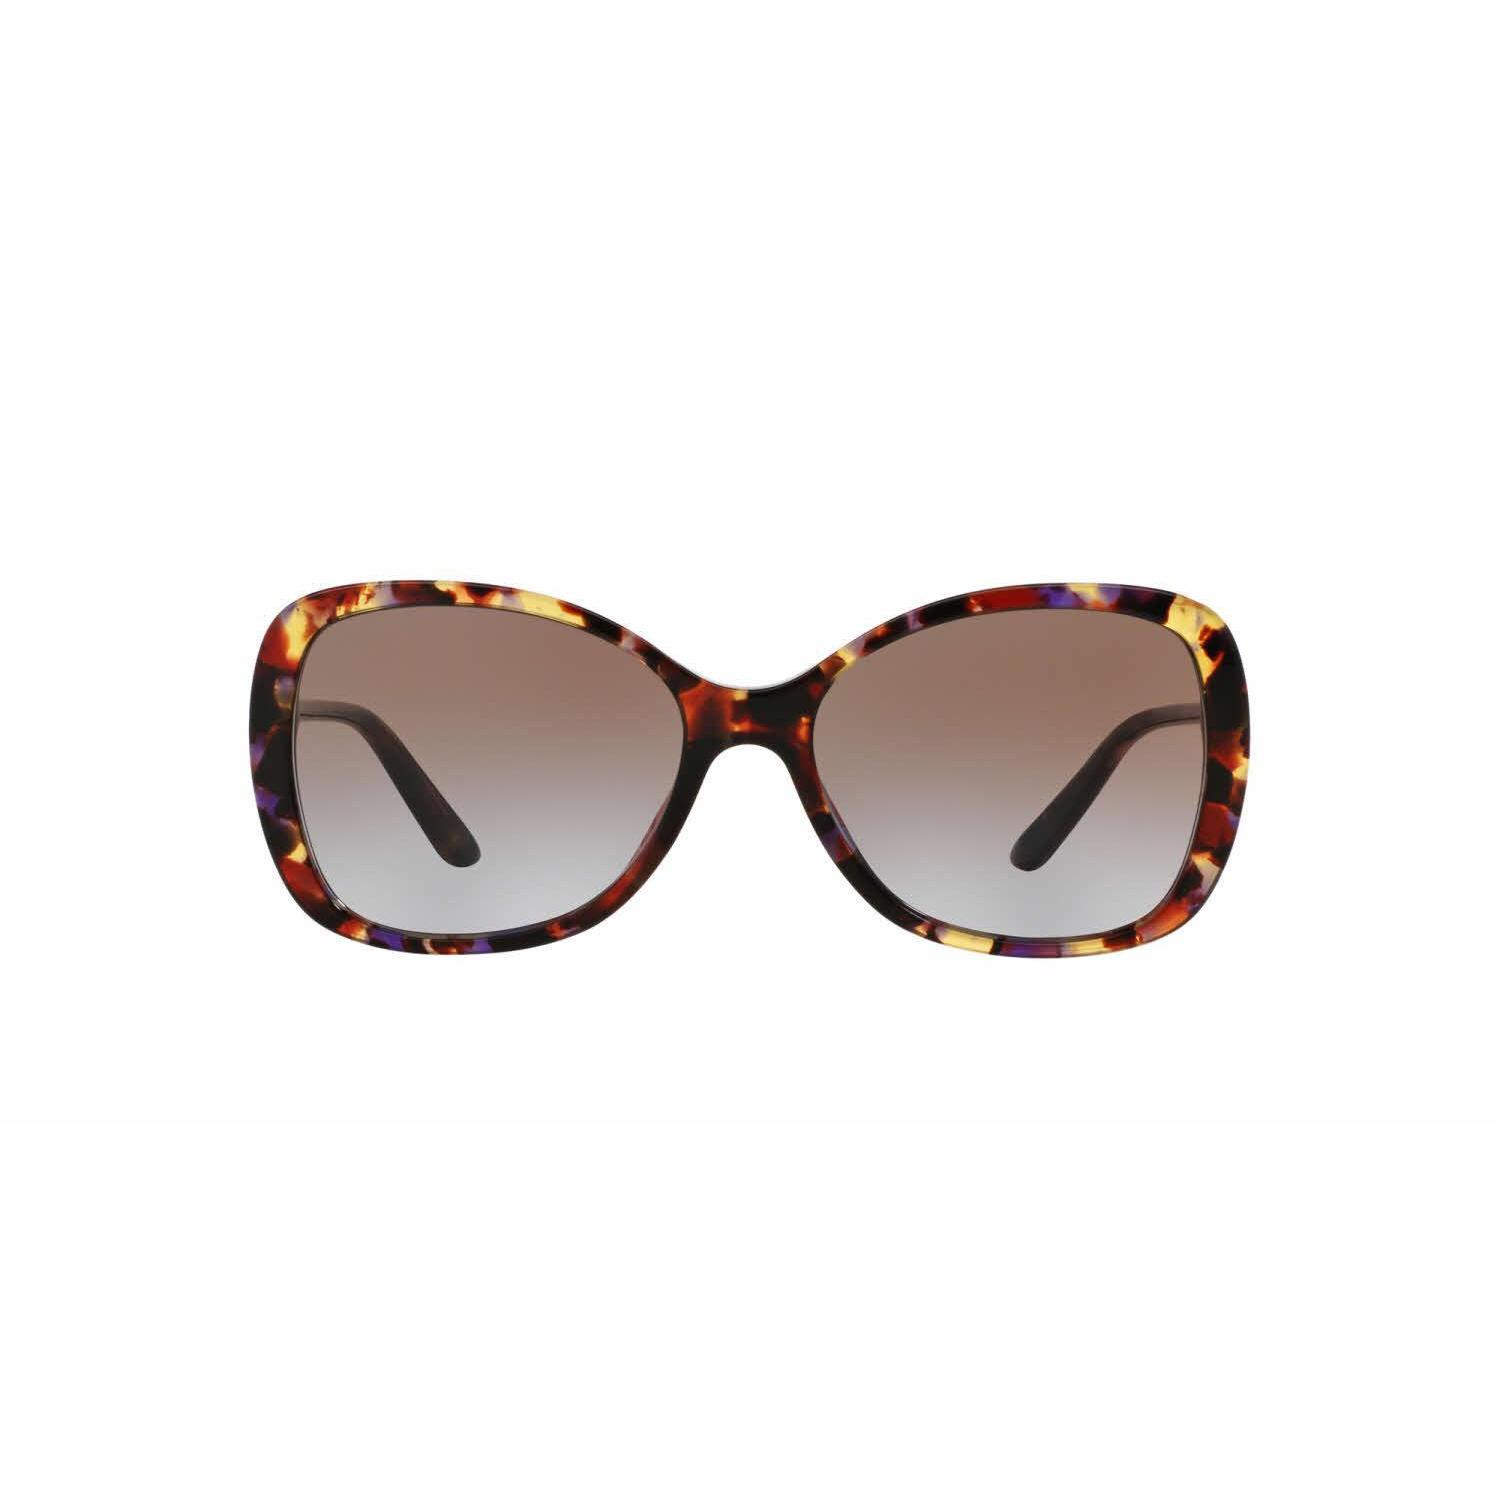 f32175fda3 Shop Versace Women VE4303 516168 Brown Metal Rectangle Sunglasses - Free  Shipping Today - Overstock - 13322306